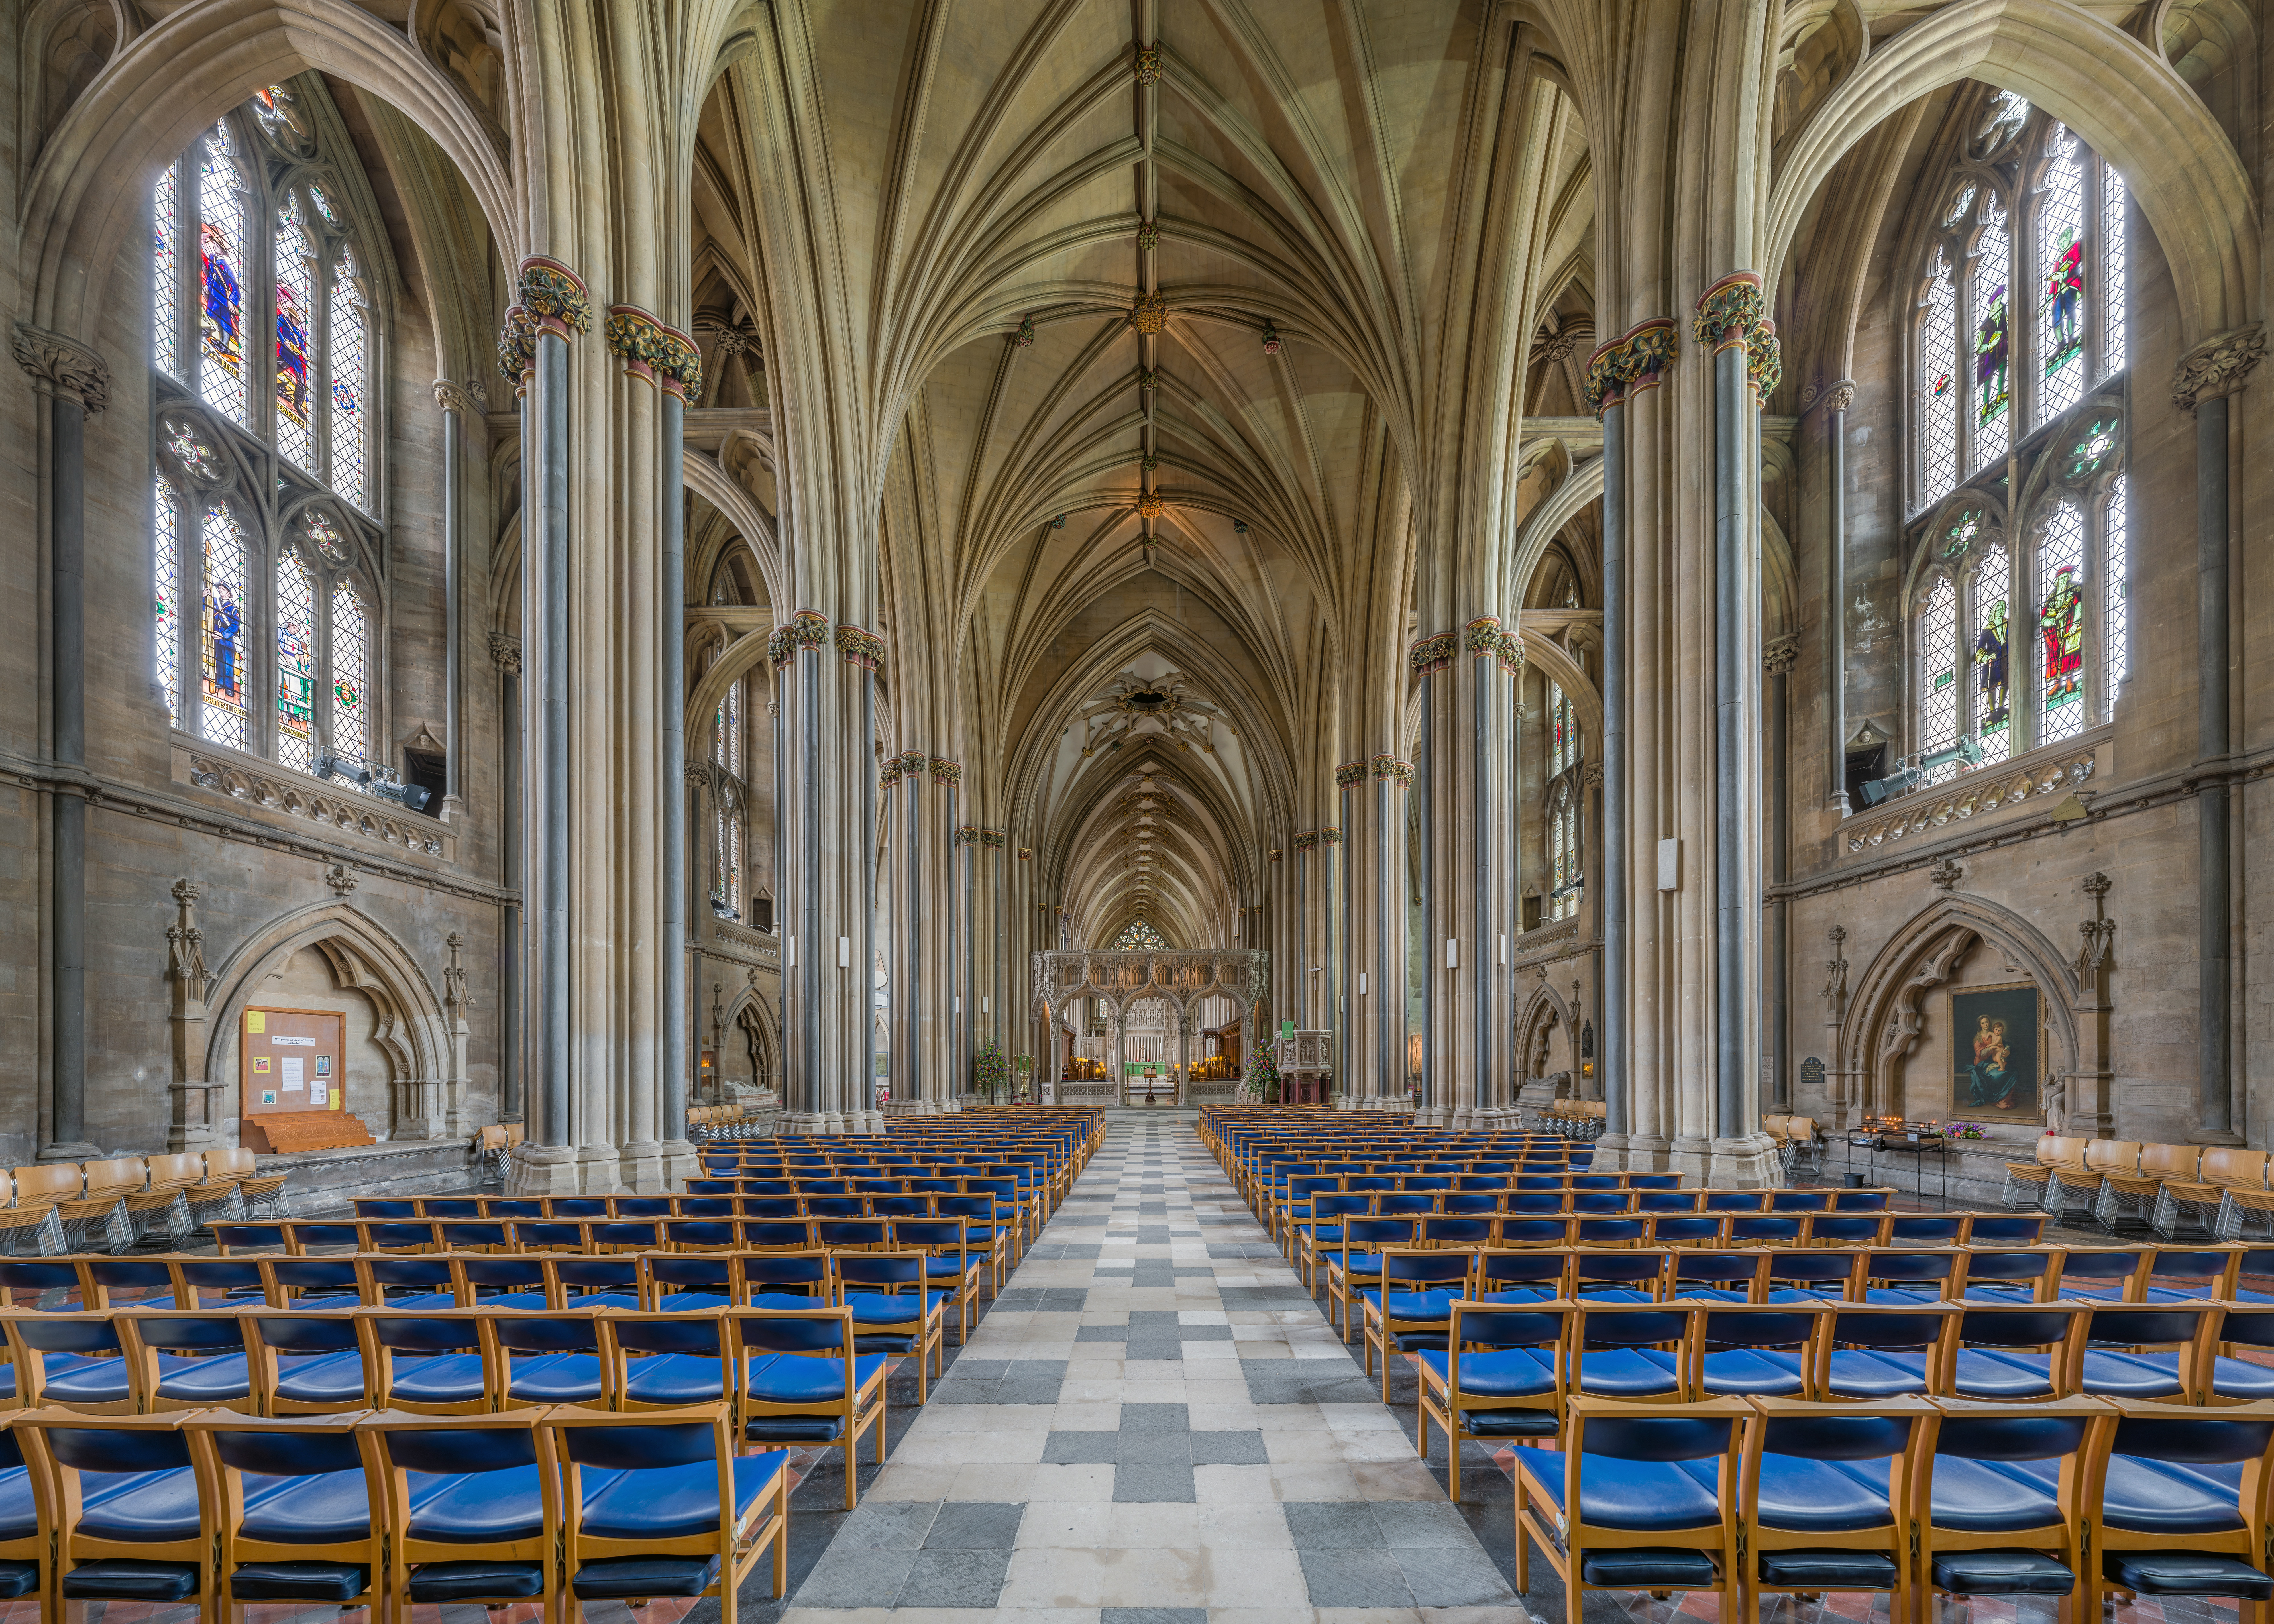 Bristol_Cathedral_Nave_looking_east,_Bristol,_UK_-_Diliff.jpg